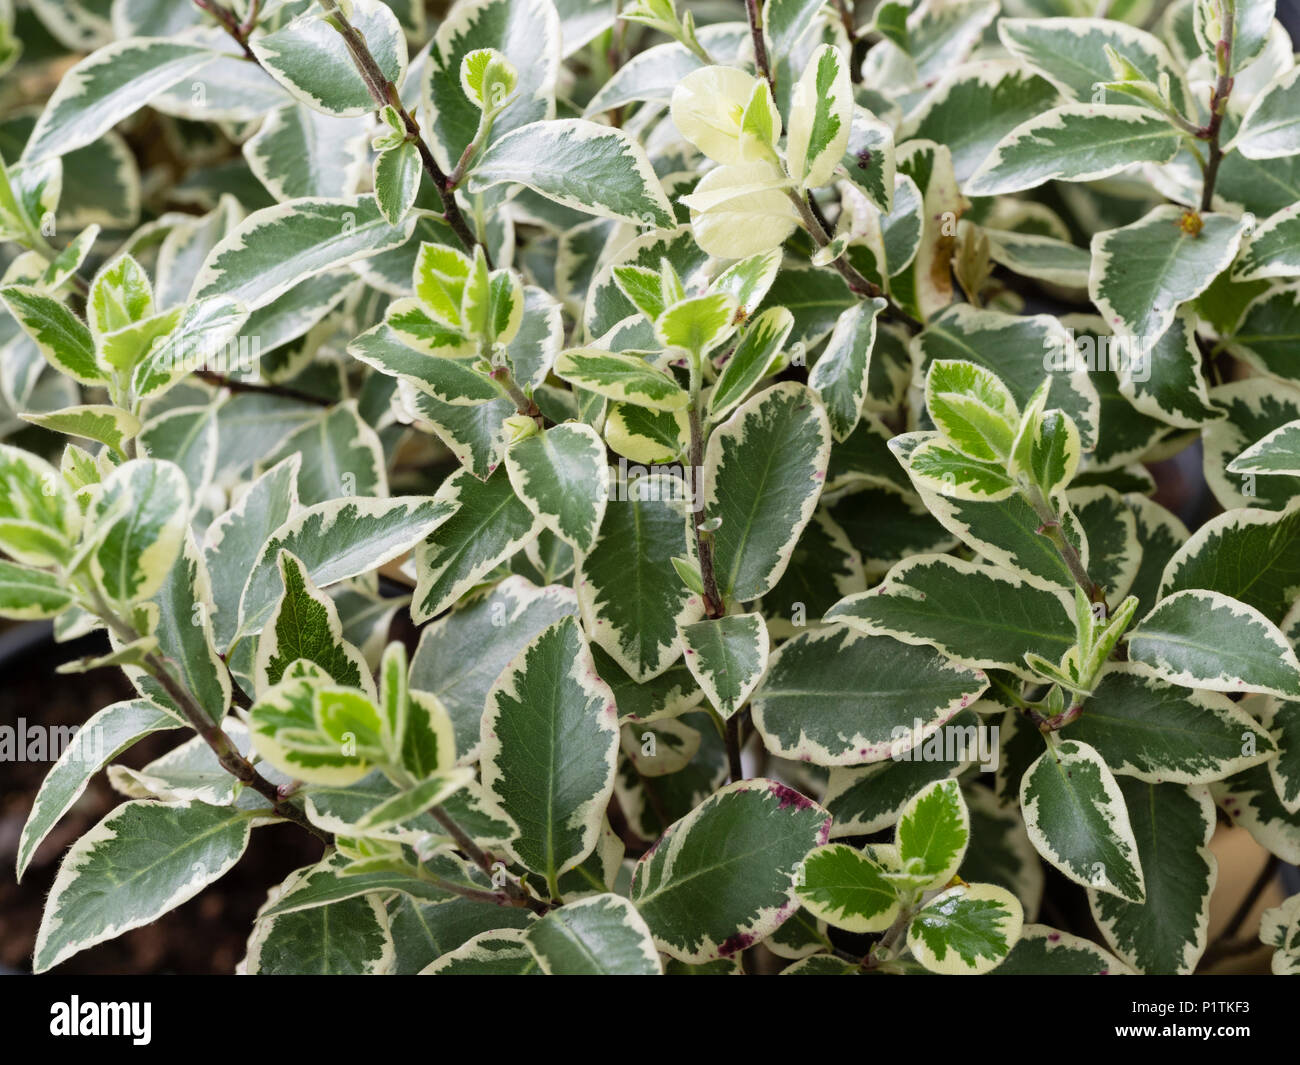 Variegated Pittosporum Stock Photos Variegated Pittosporum Stock